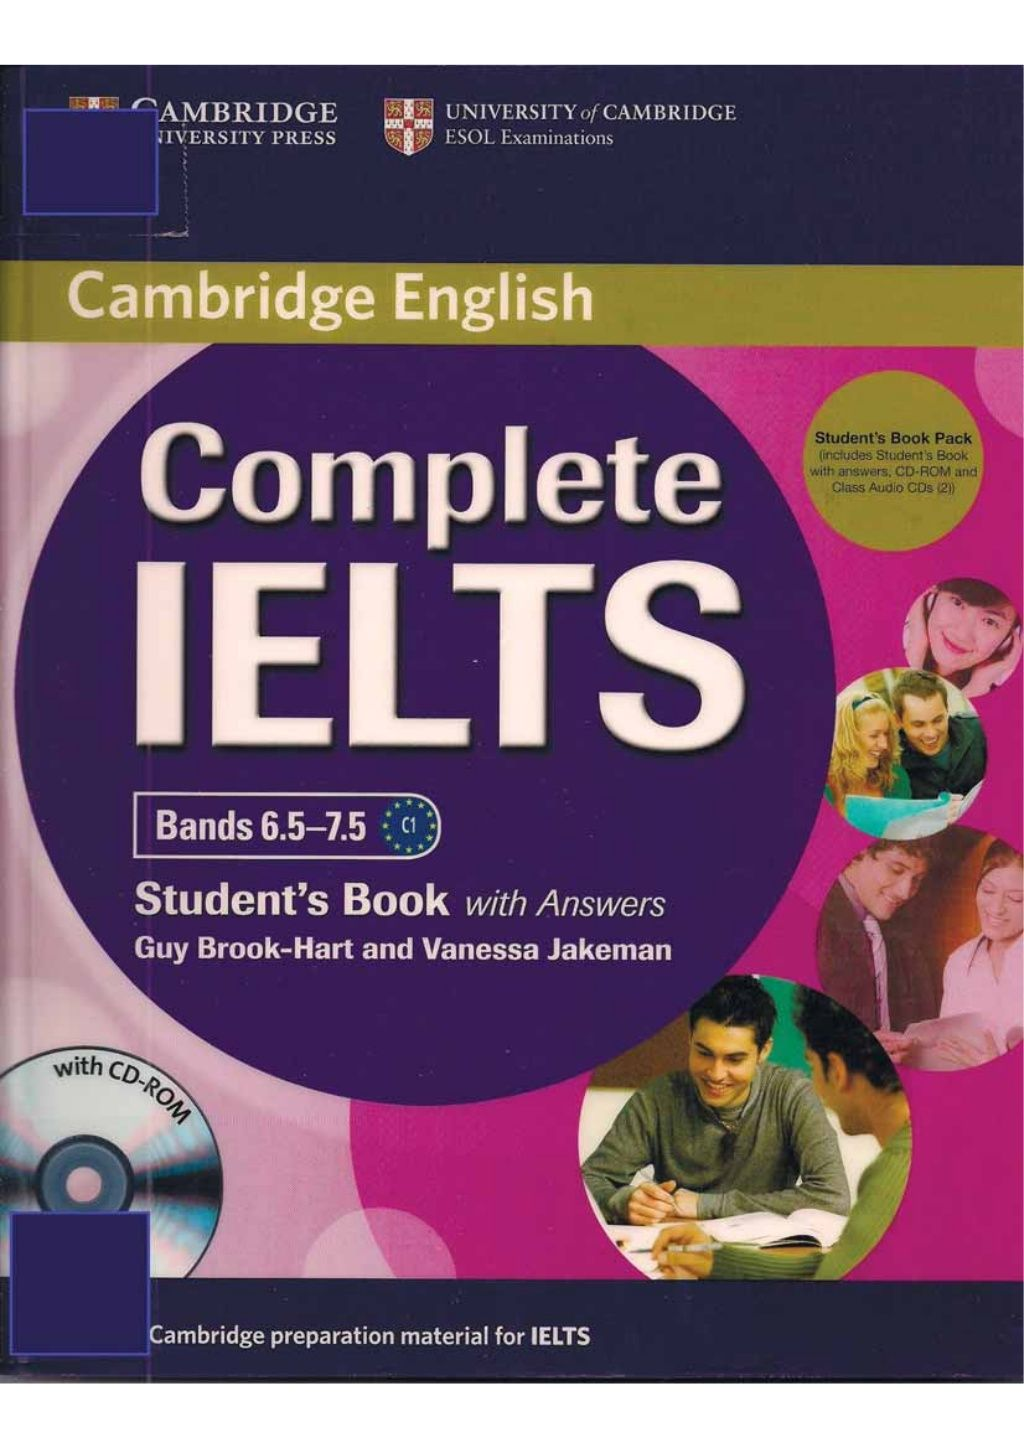 Complete Ielts Bands 6 5 7 5 Student S Pack Student S Book With An Libros En Ingles Pdf Ingles Britanico Abecedario Inglés